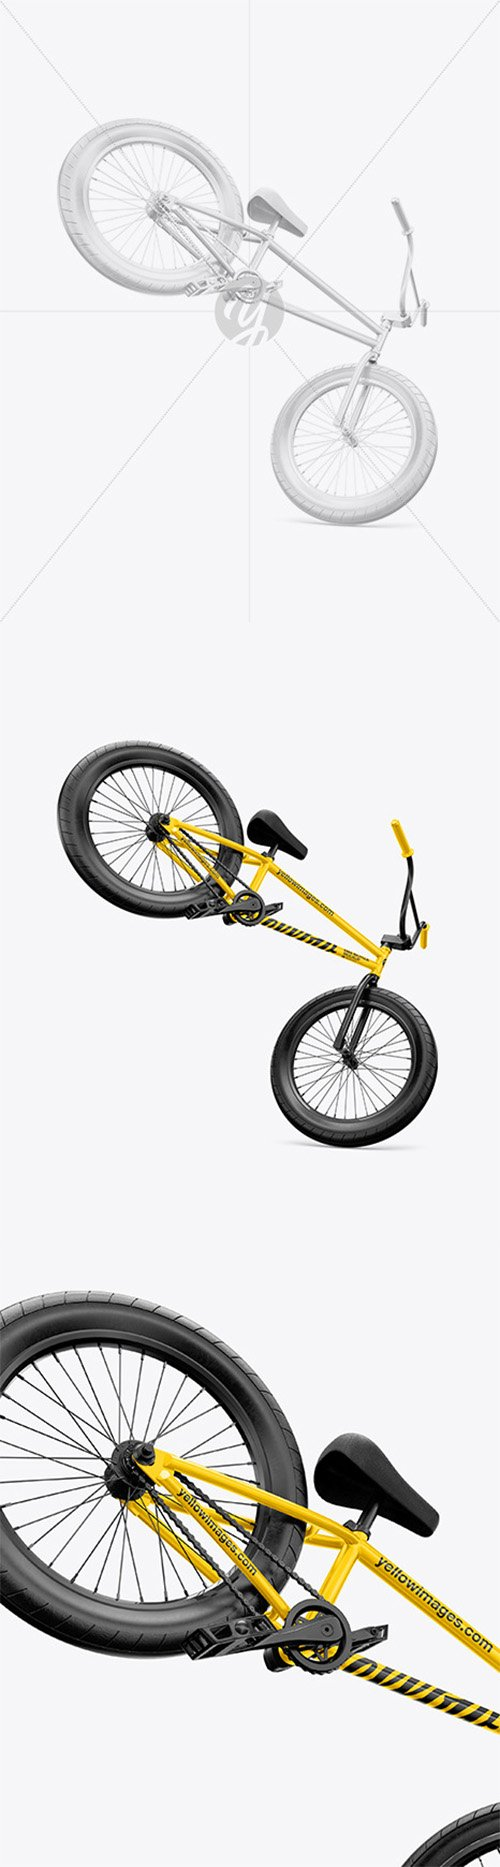 BMX Bicycle Mockup - Right Side View 65230